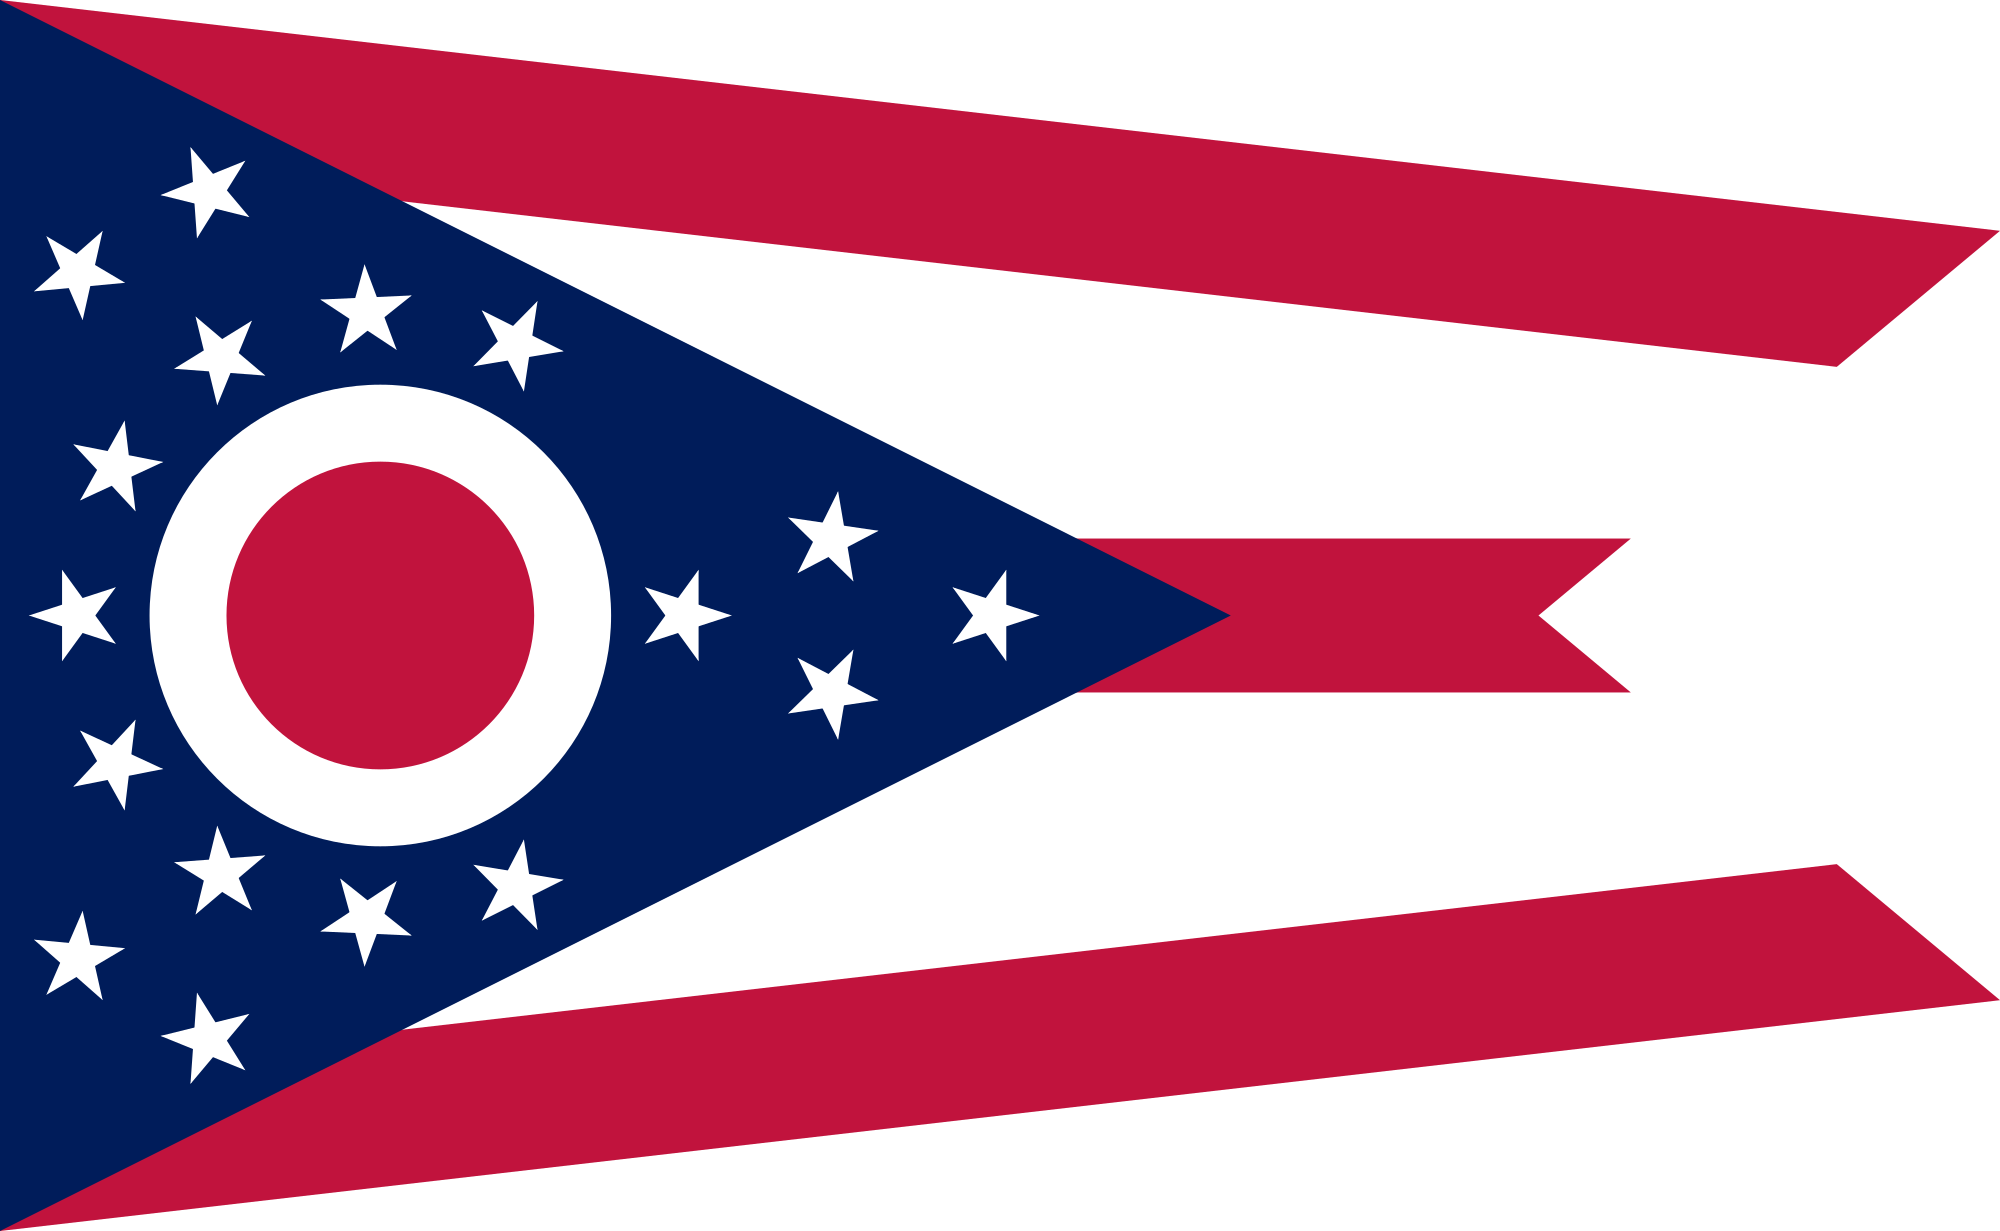 Red white and blue banner png. Flag of ohio wikipedia